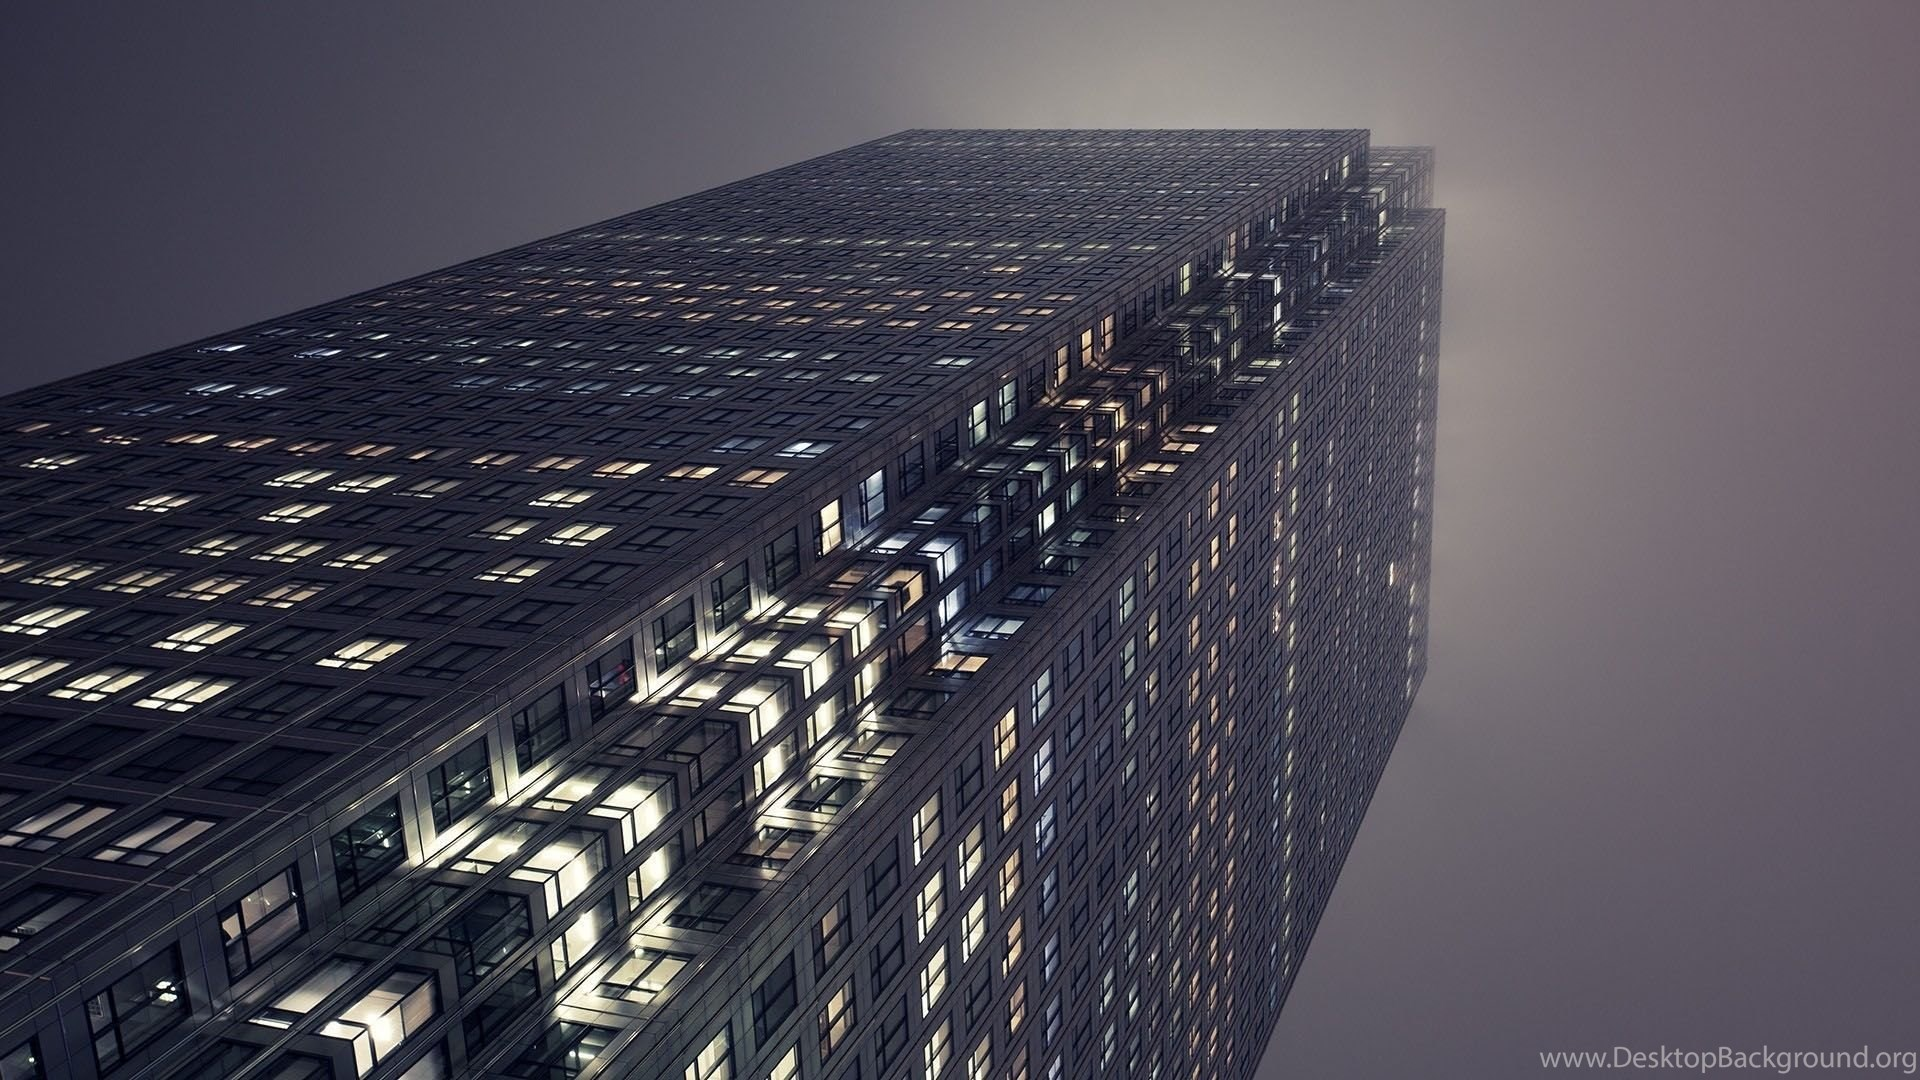 Building Skyscraper Fog Architecture Wallpapers Desktop Background